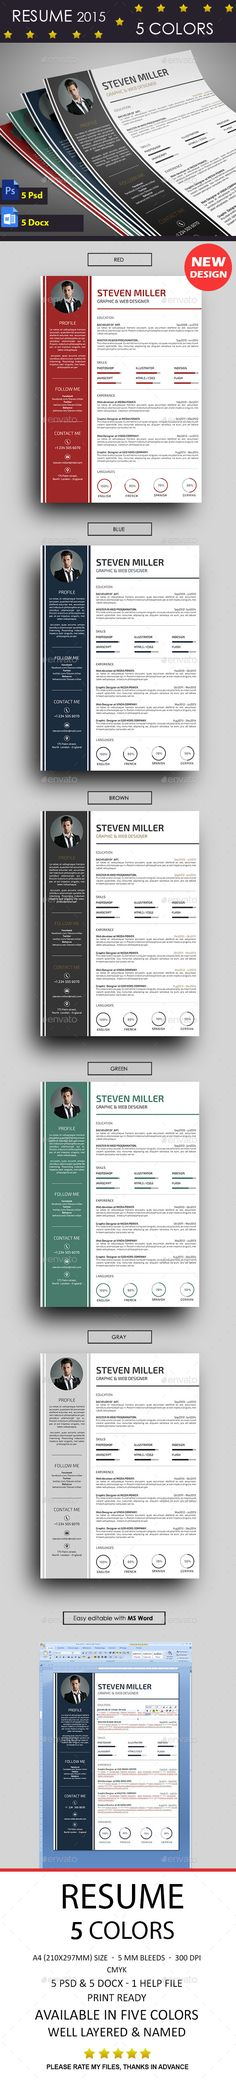 Resume Cv template, Resume cv and Creative cv template - how to make resume on word